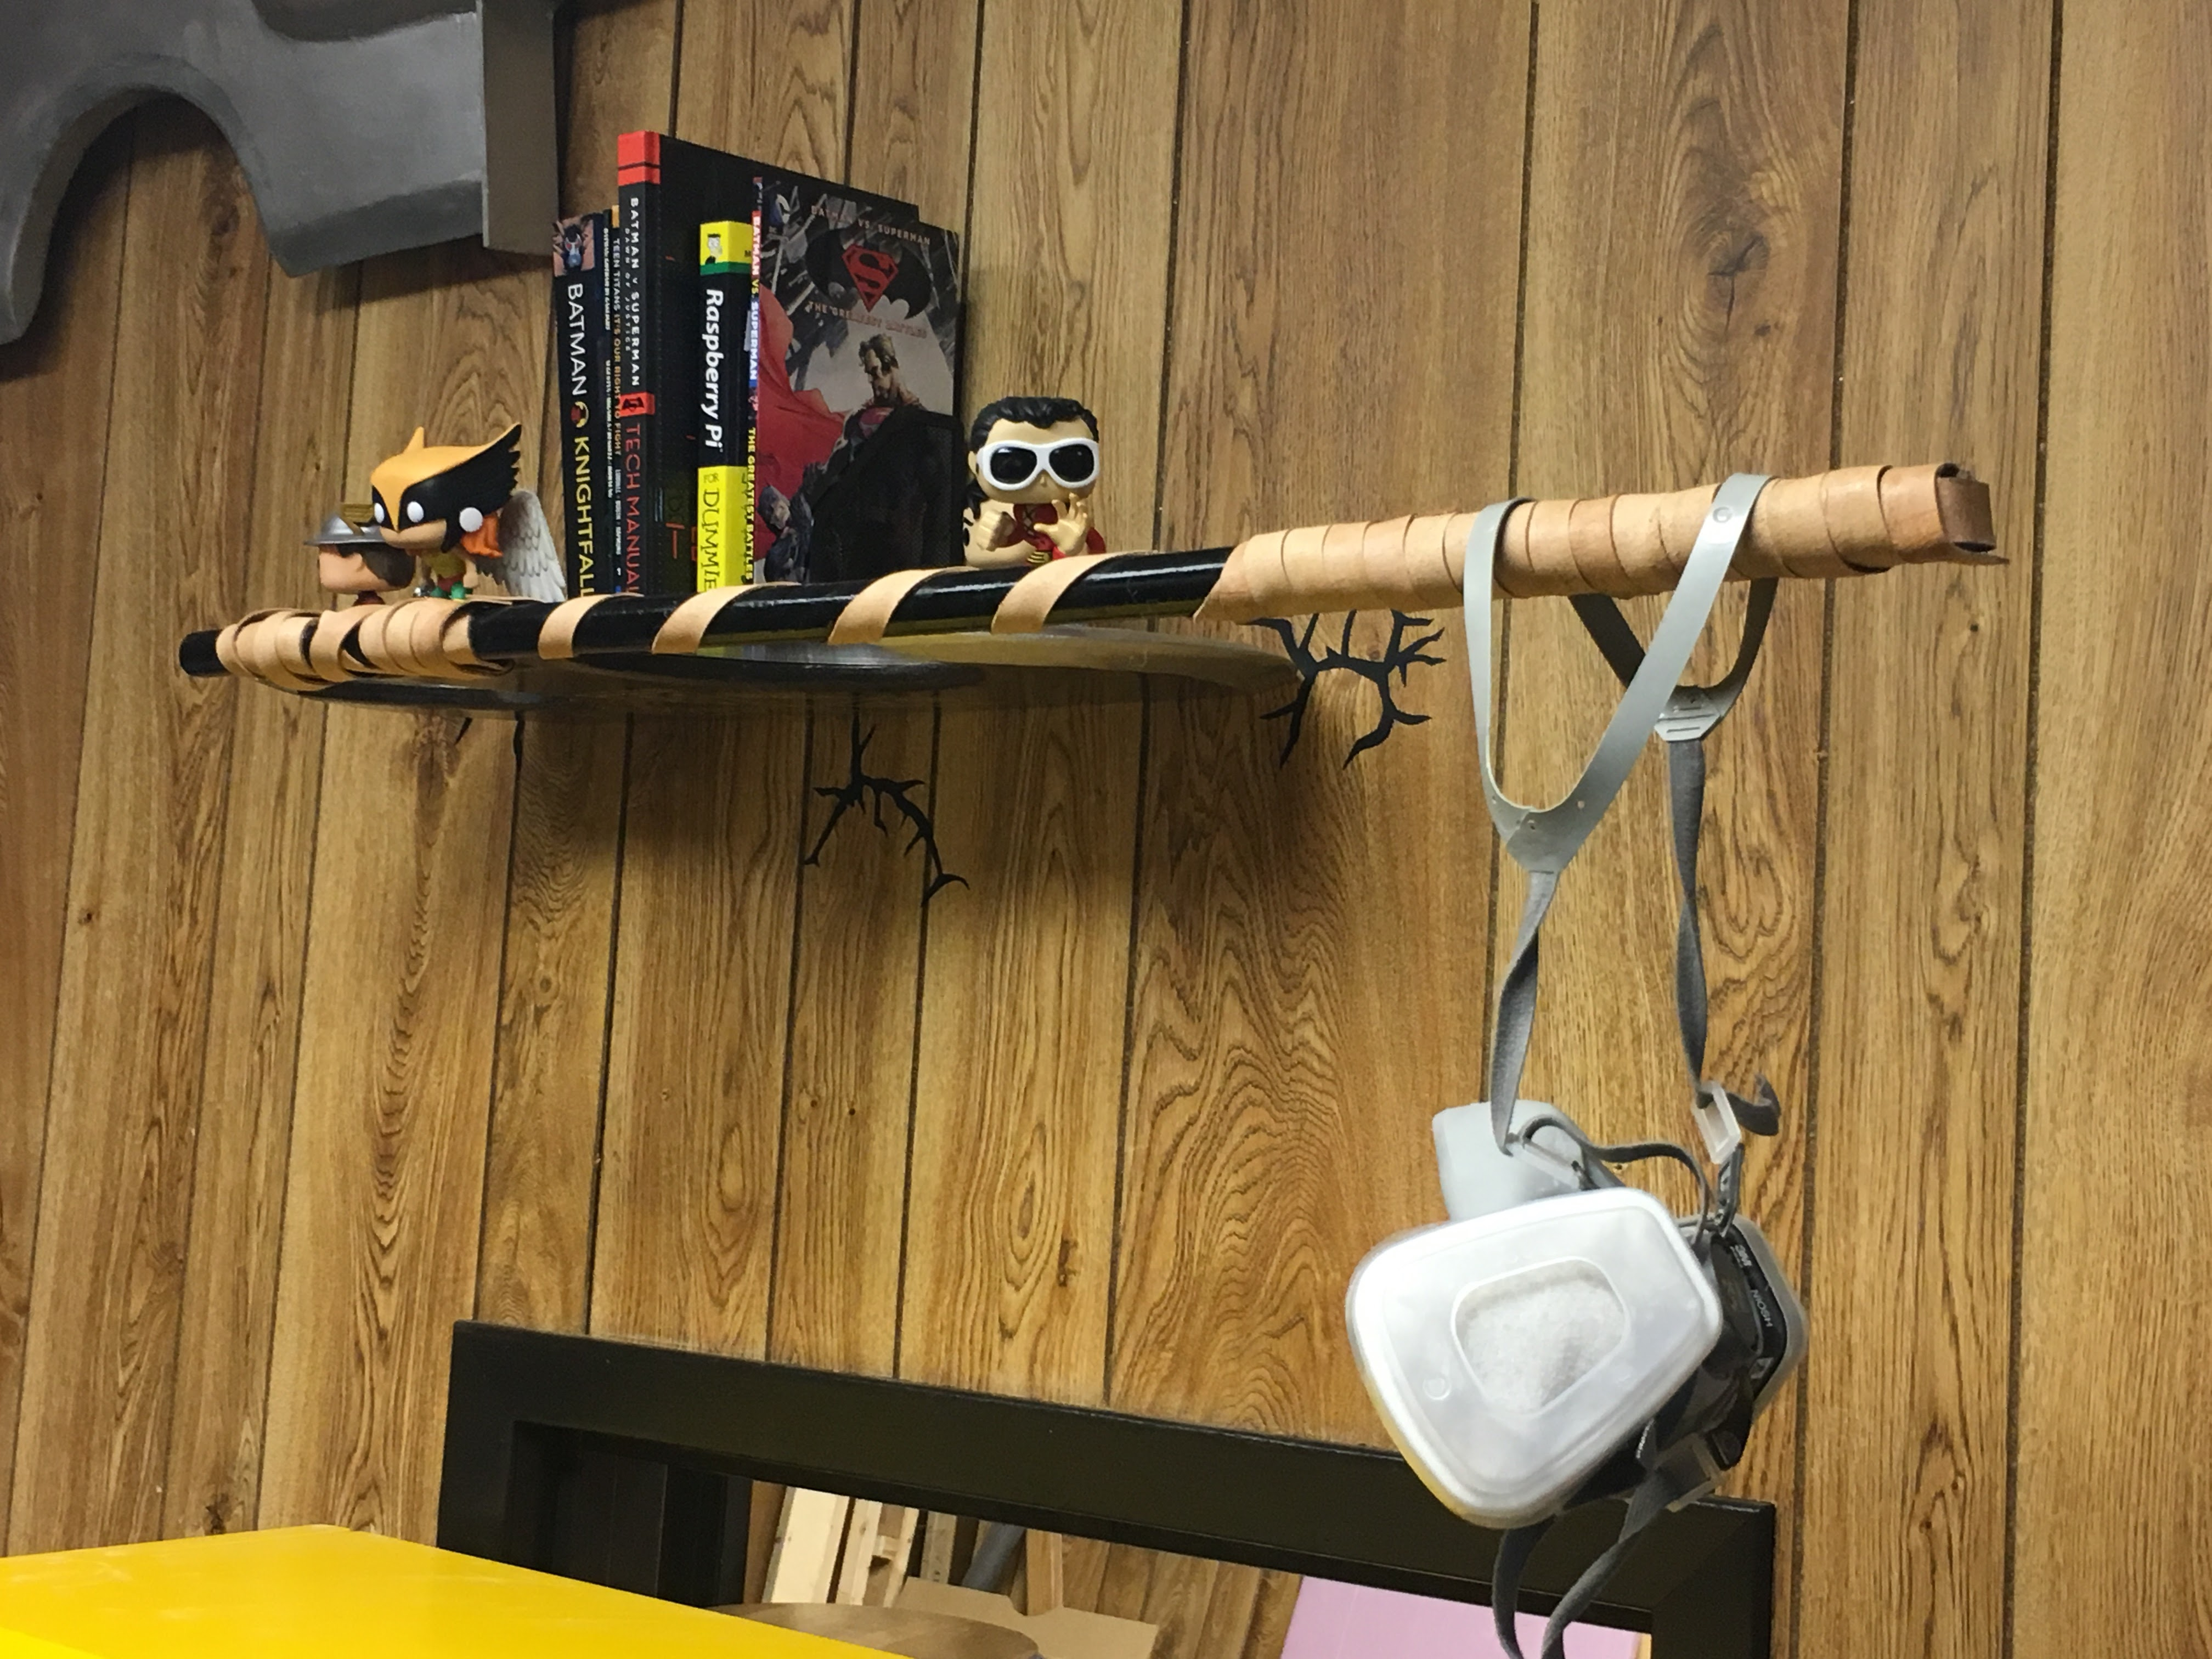 Picture of Viking Axe in Wall Floating Shelf